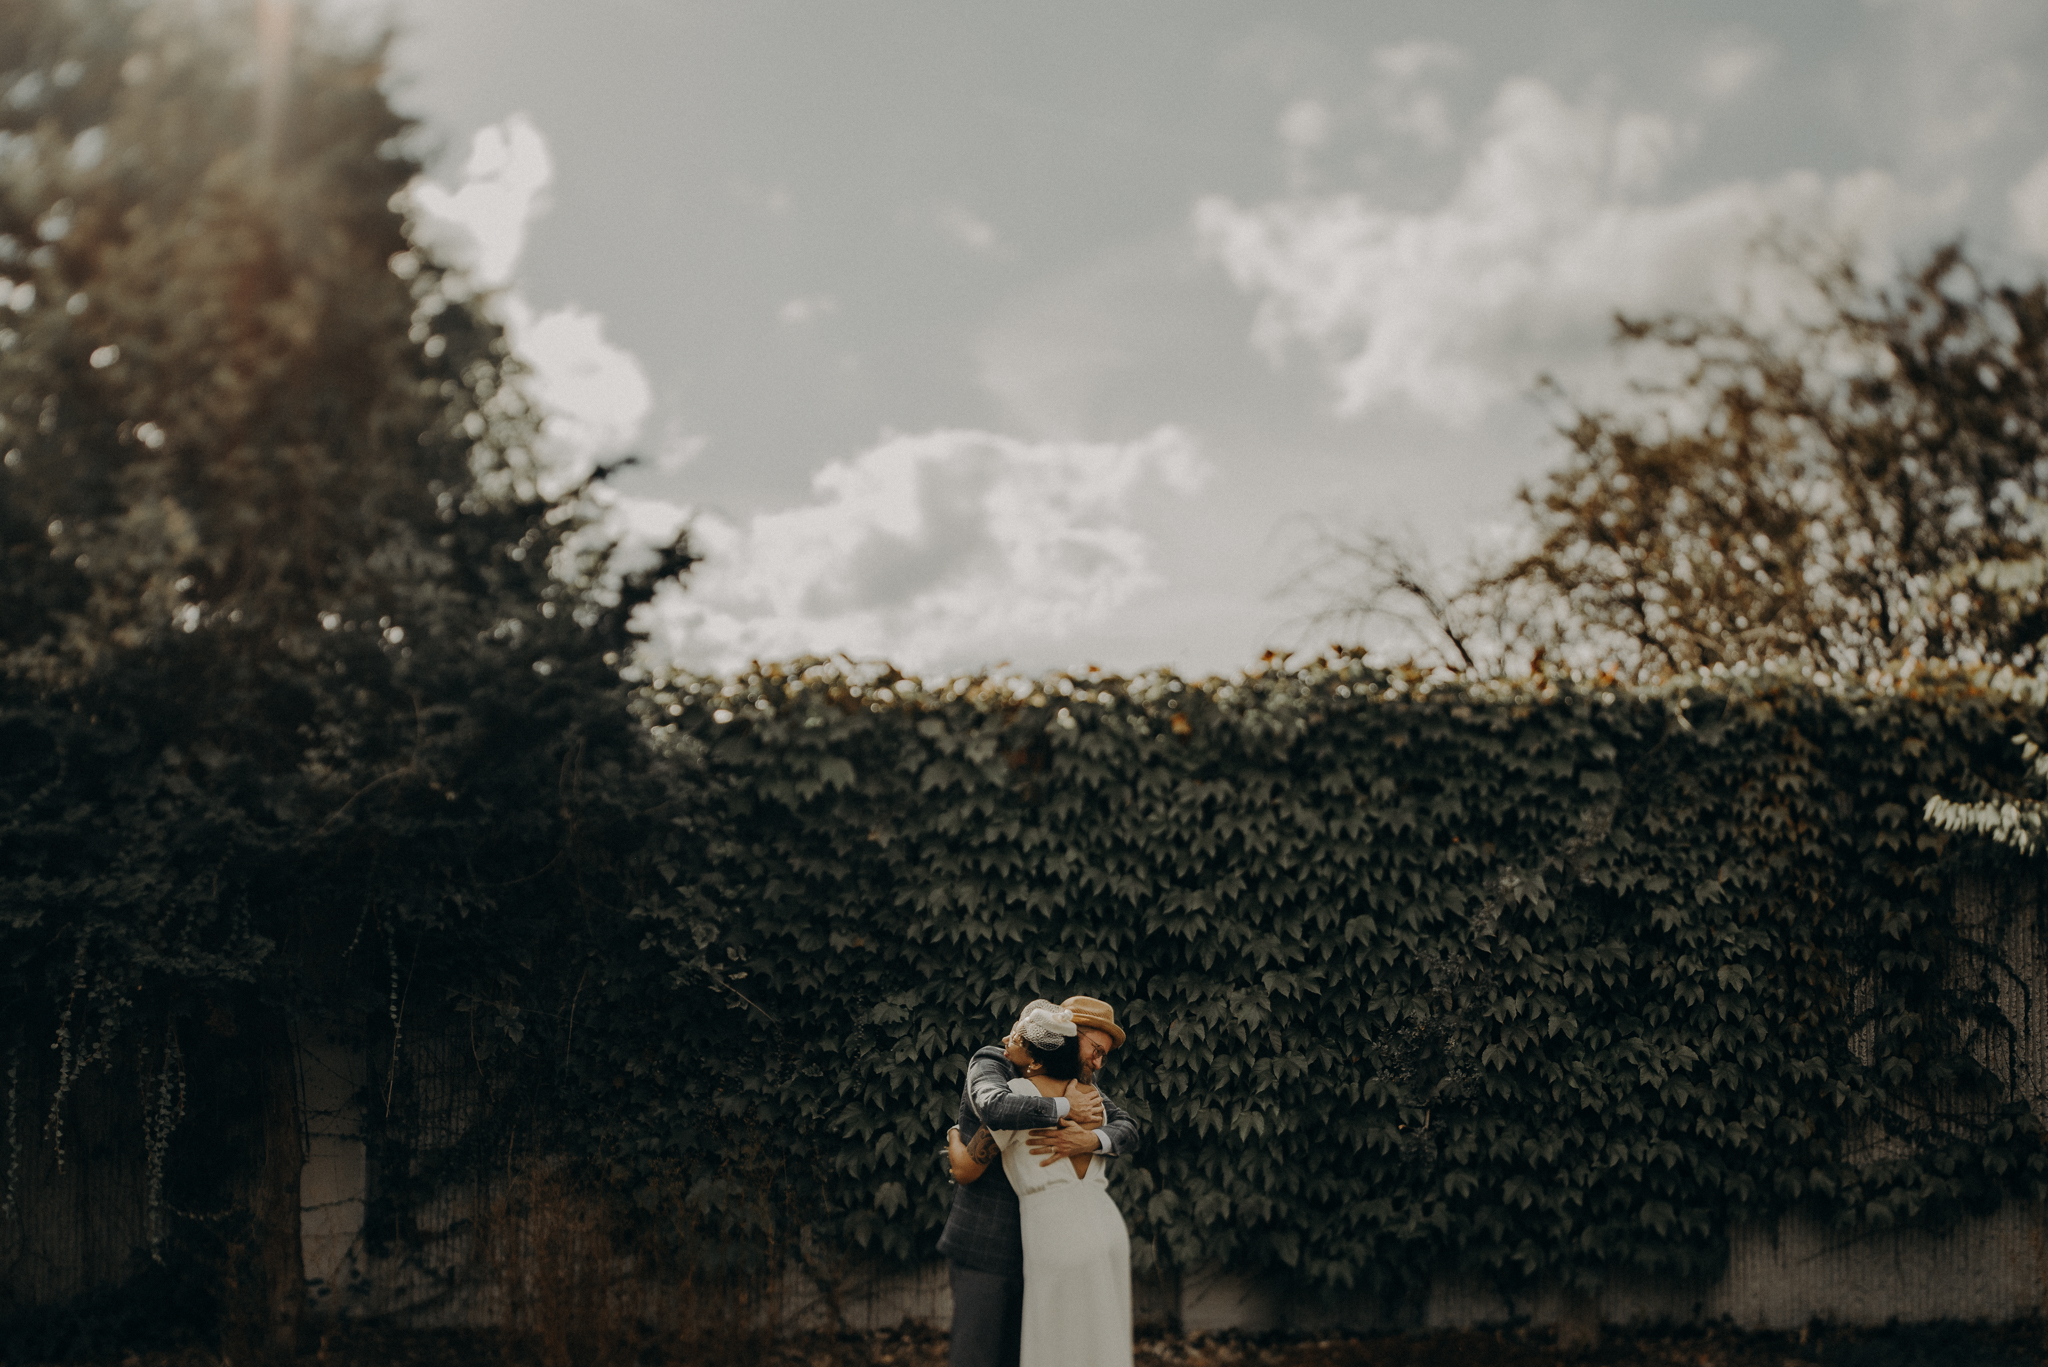 Los Angeles Wedding Photographer - Portland Elopement Photographer - IsaiahAndTaylor.com-068.jpg